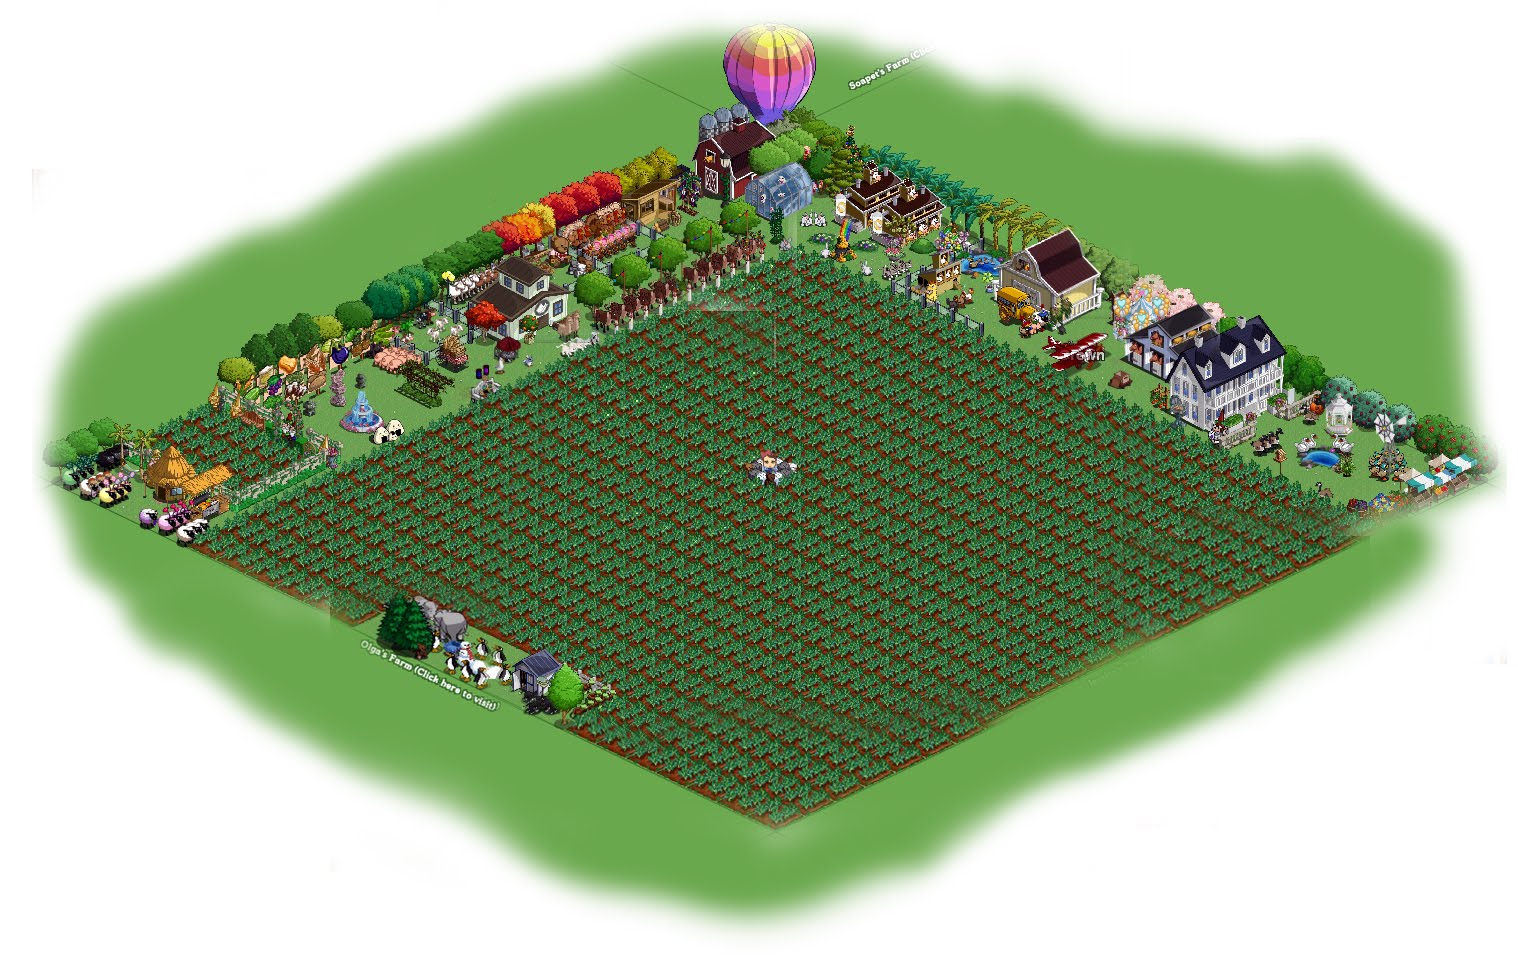 farmville personals Meet farmville singles online & chat in the forums dhu is a 100% free dating site to find personals & casual encounters in farmville.